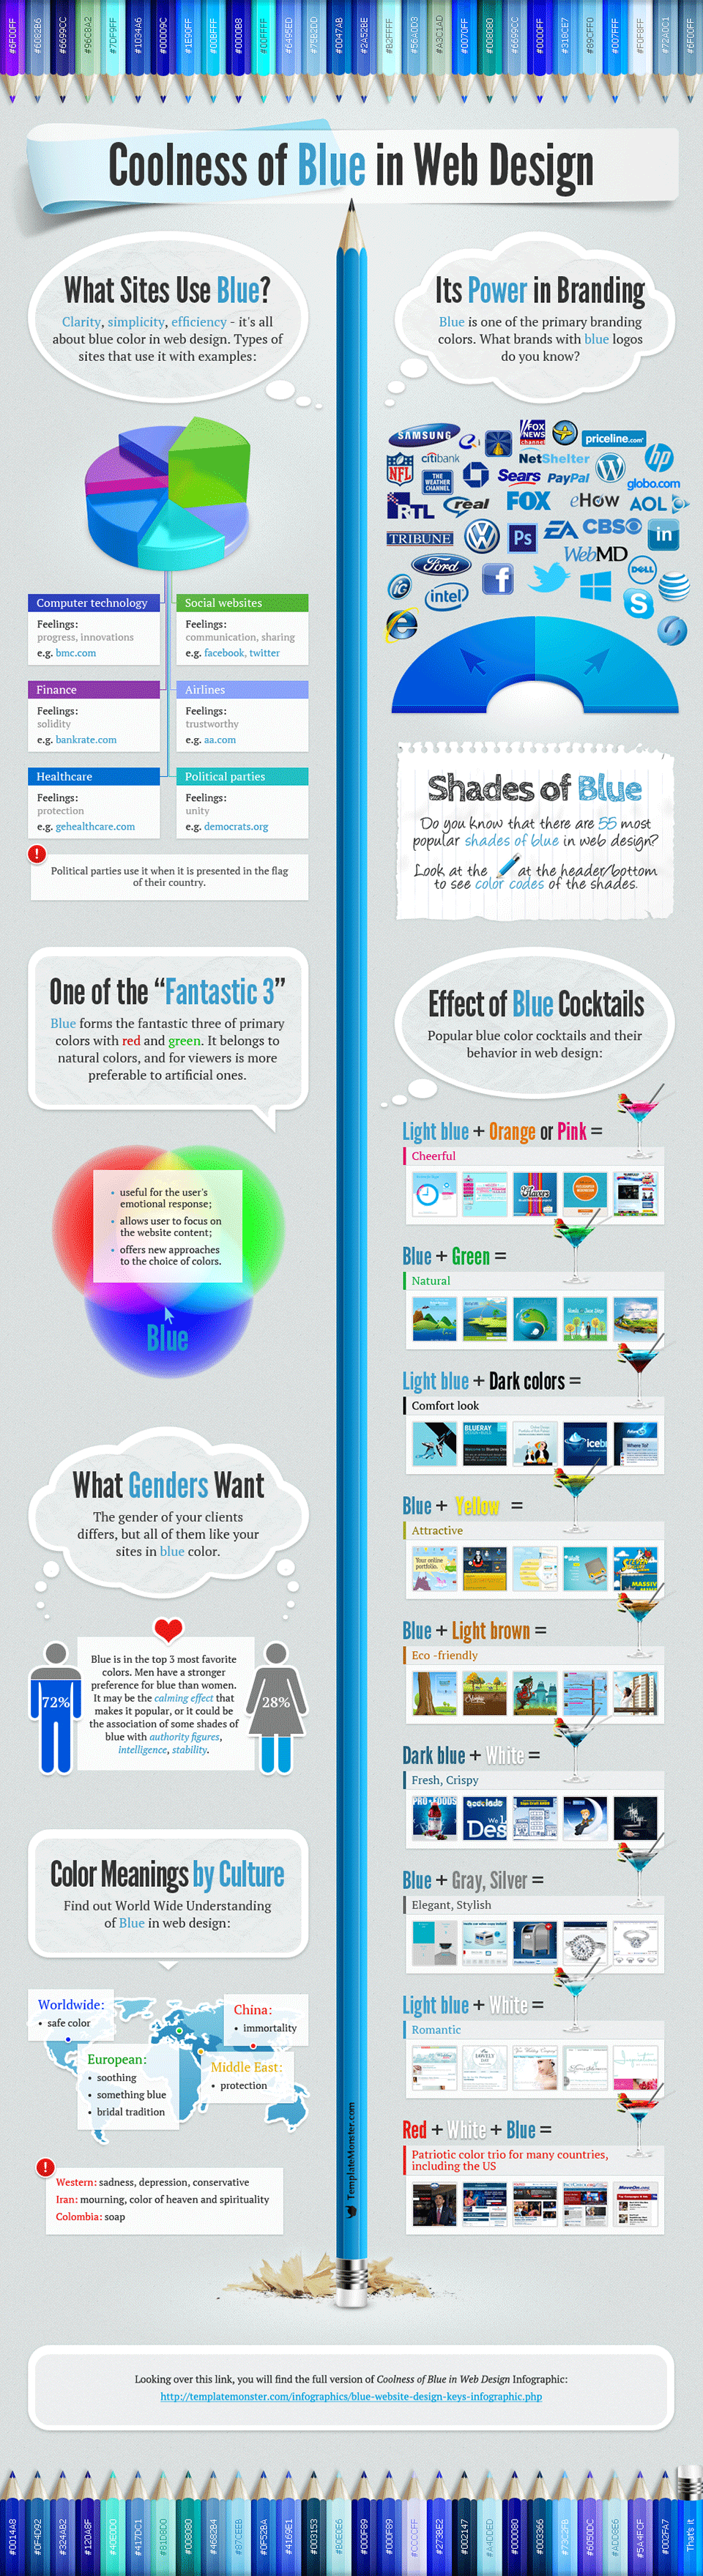 blue in web design1 Coolness of Blue in Web Design [infographic]